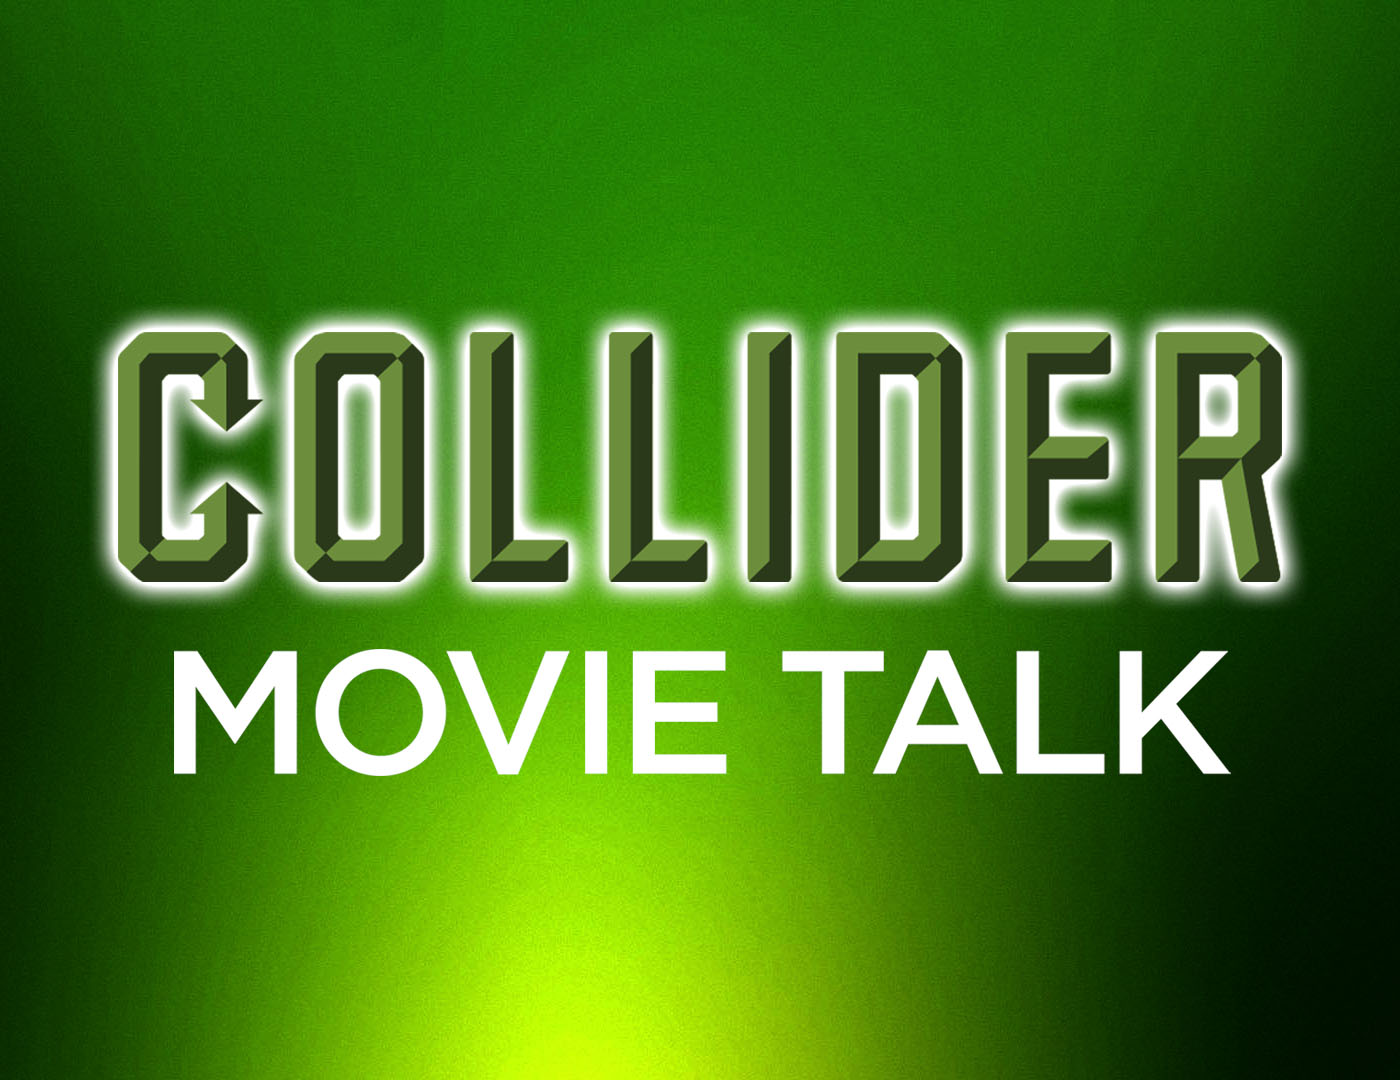 Collider Movie Talk - New Star Trek Beyond Trailer, First Beauty and The Beast Teaser Trailer